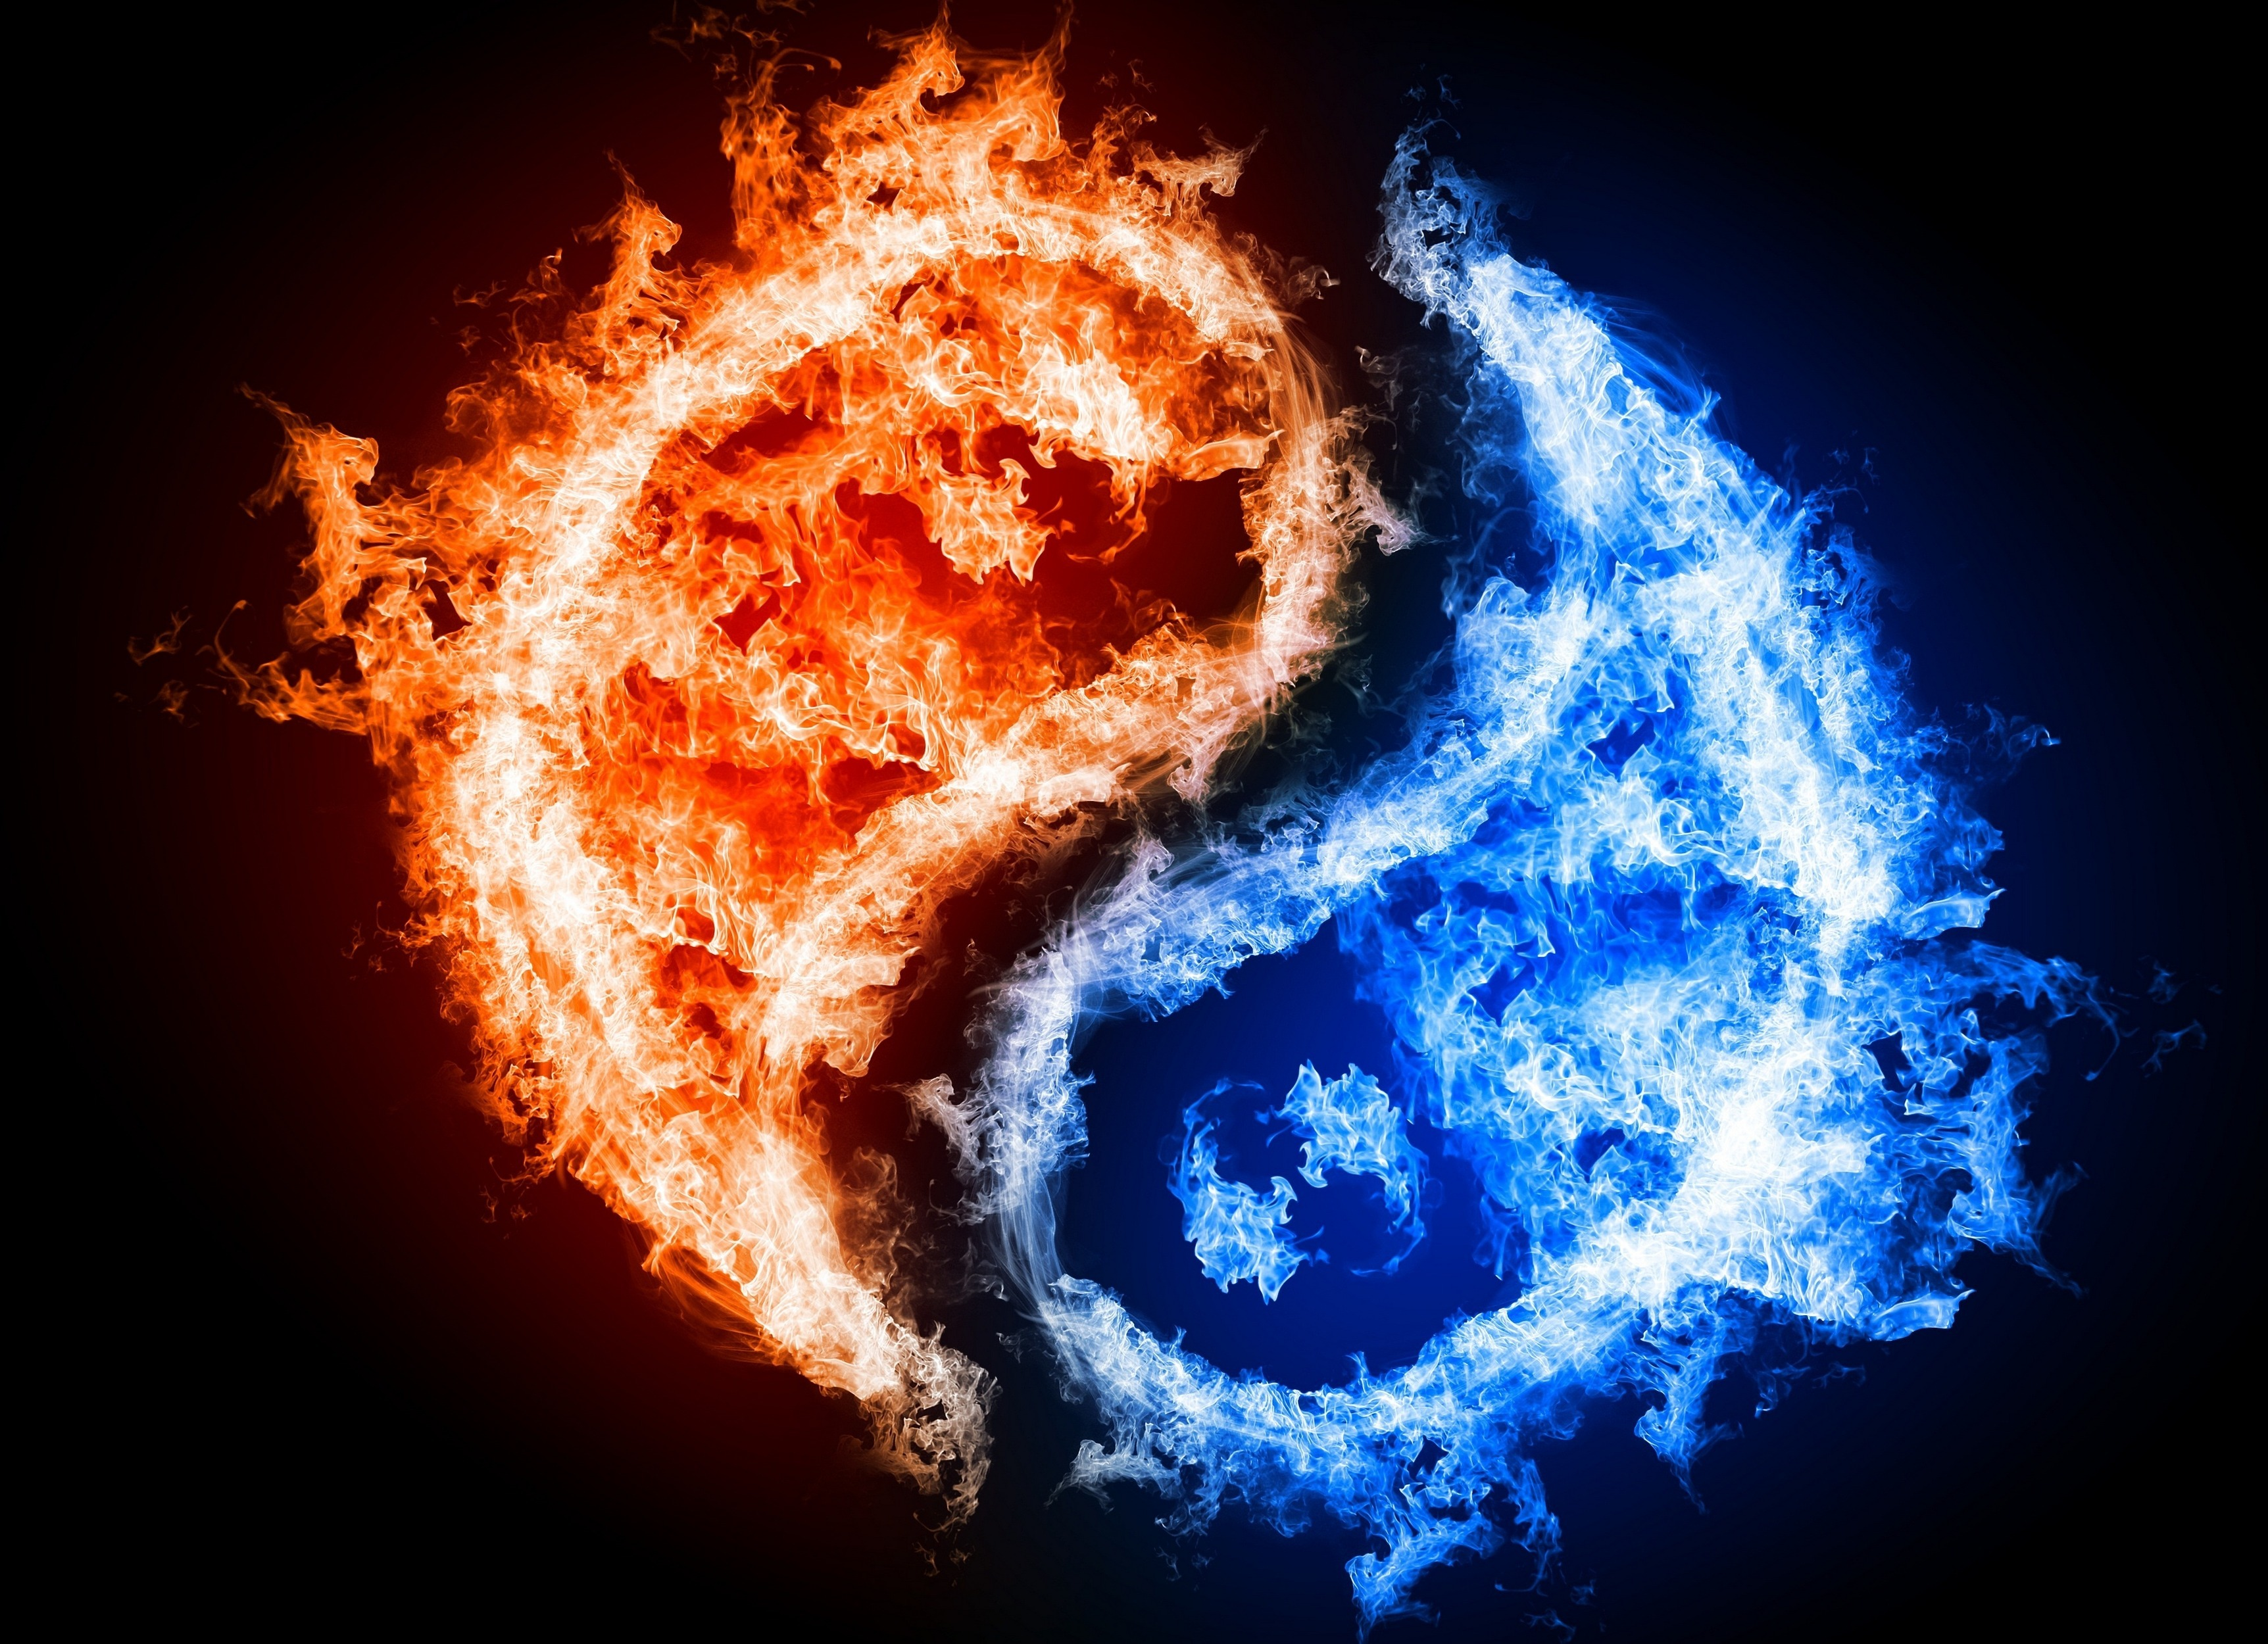 yin_and_yang_symbols_east_philosophy_fire_hd-wallpaper-233570